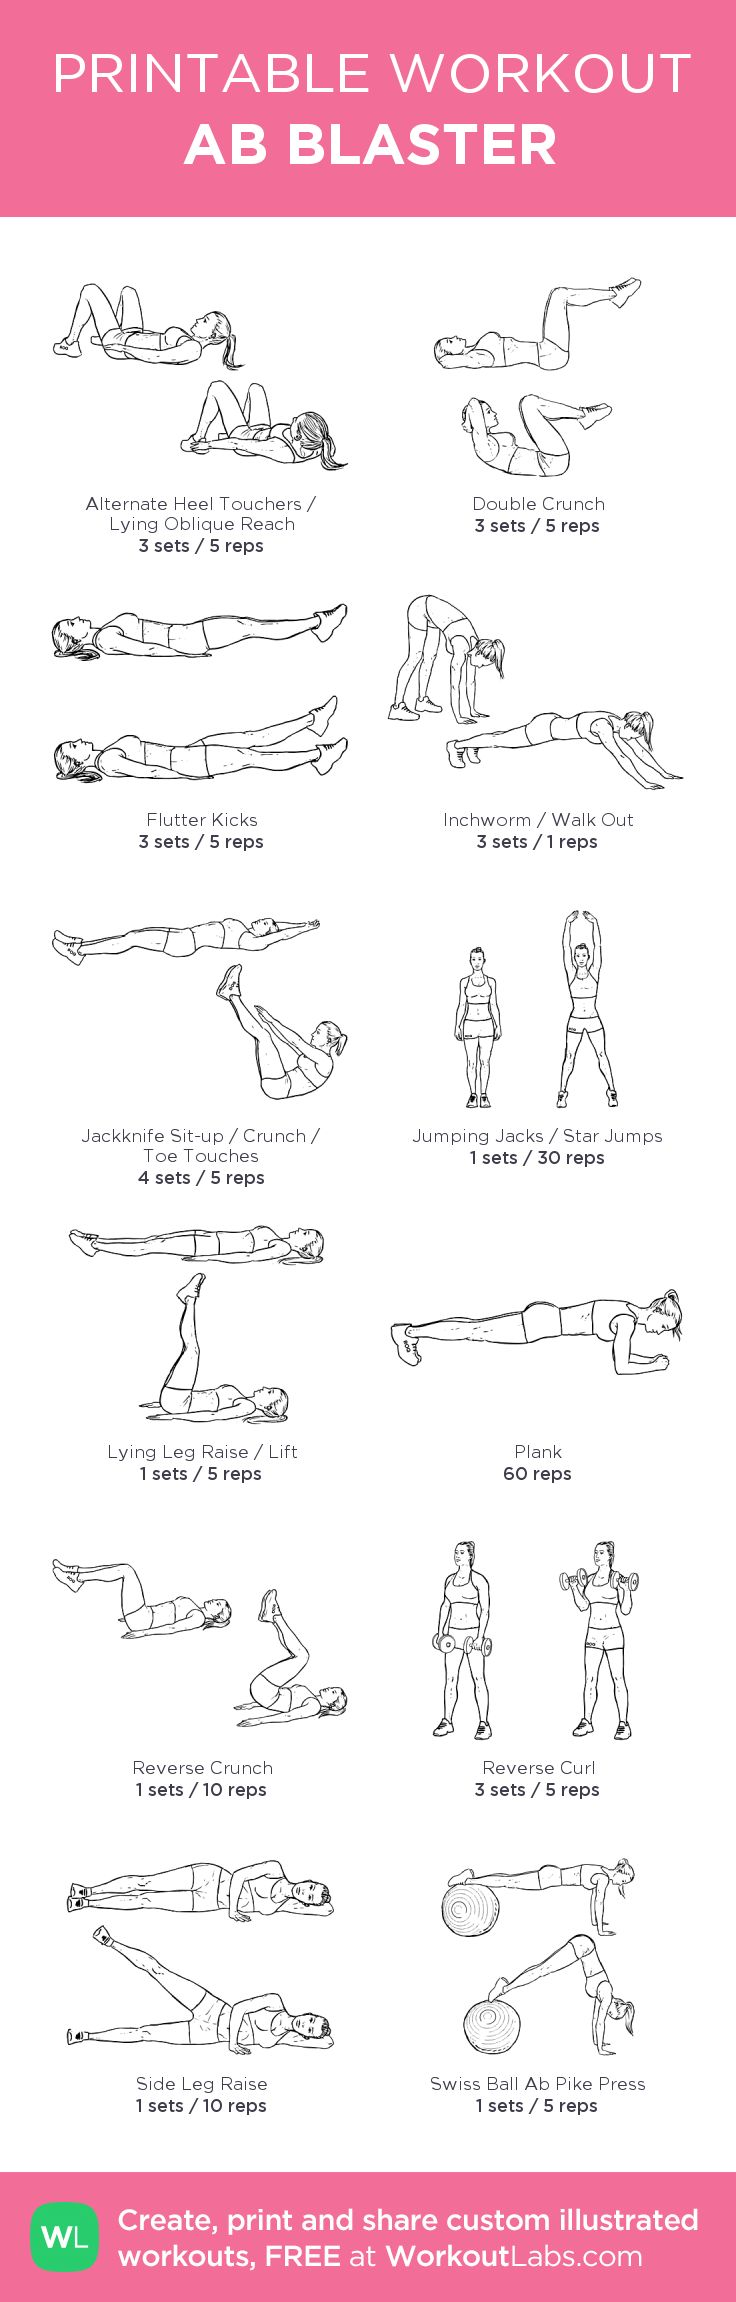 AB BLASTER – my custom workout created at WorkoutLabs.com • Click through to download as printable PDF! #customworkout